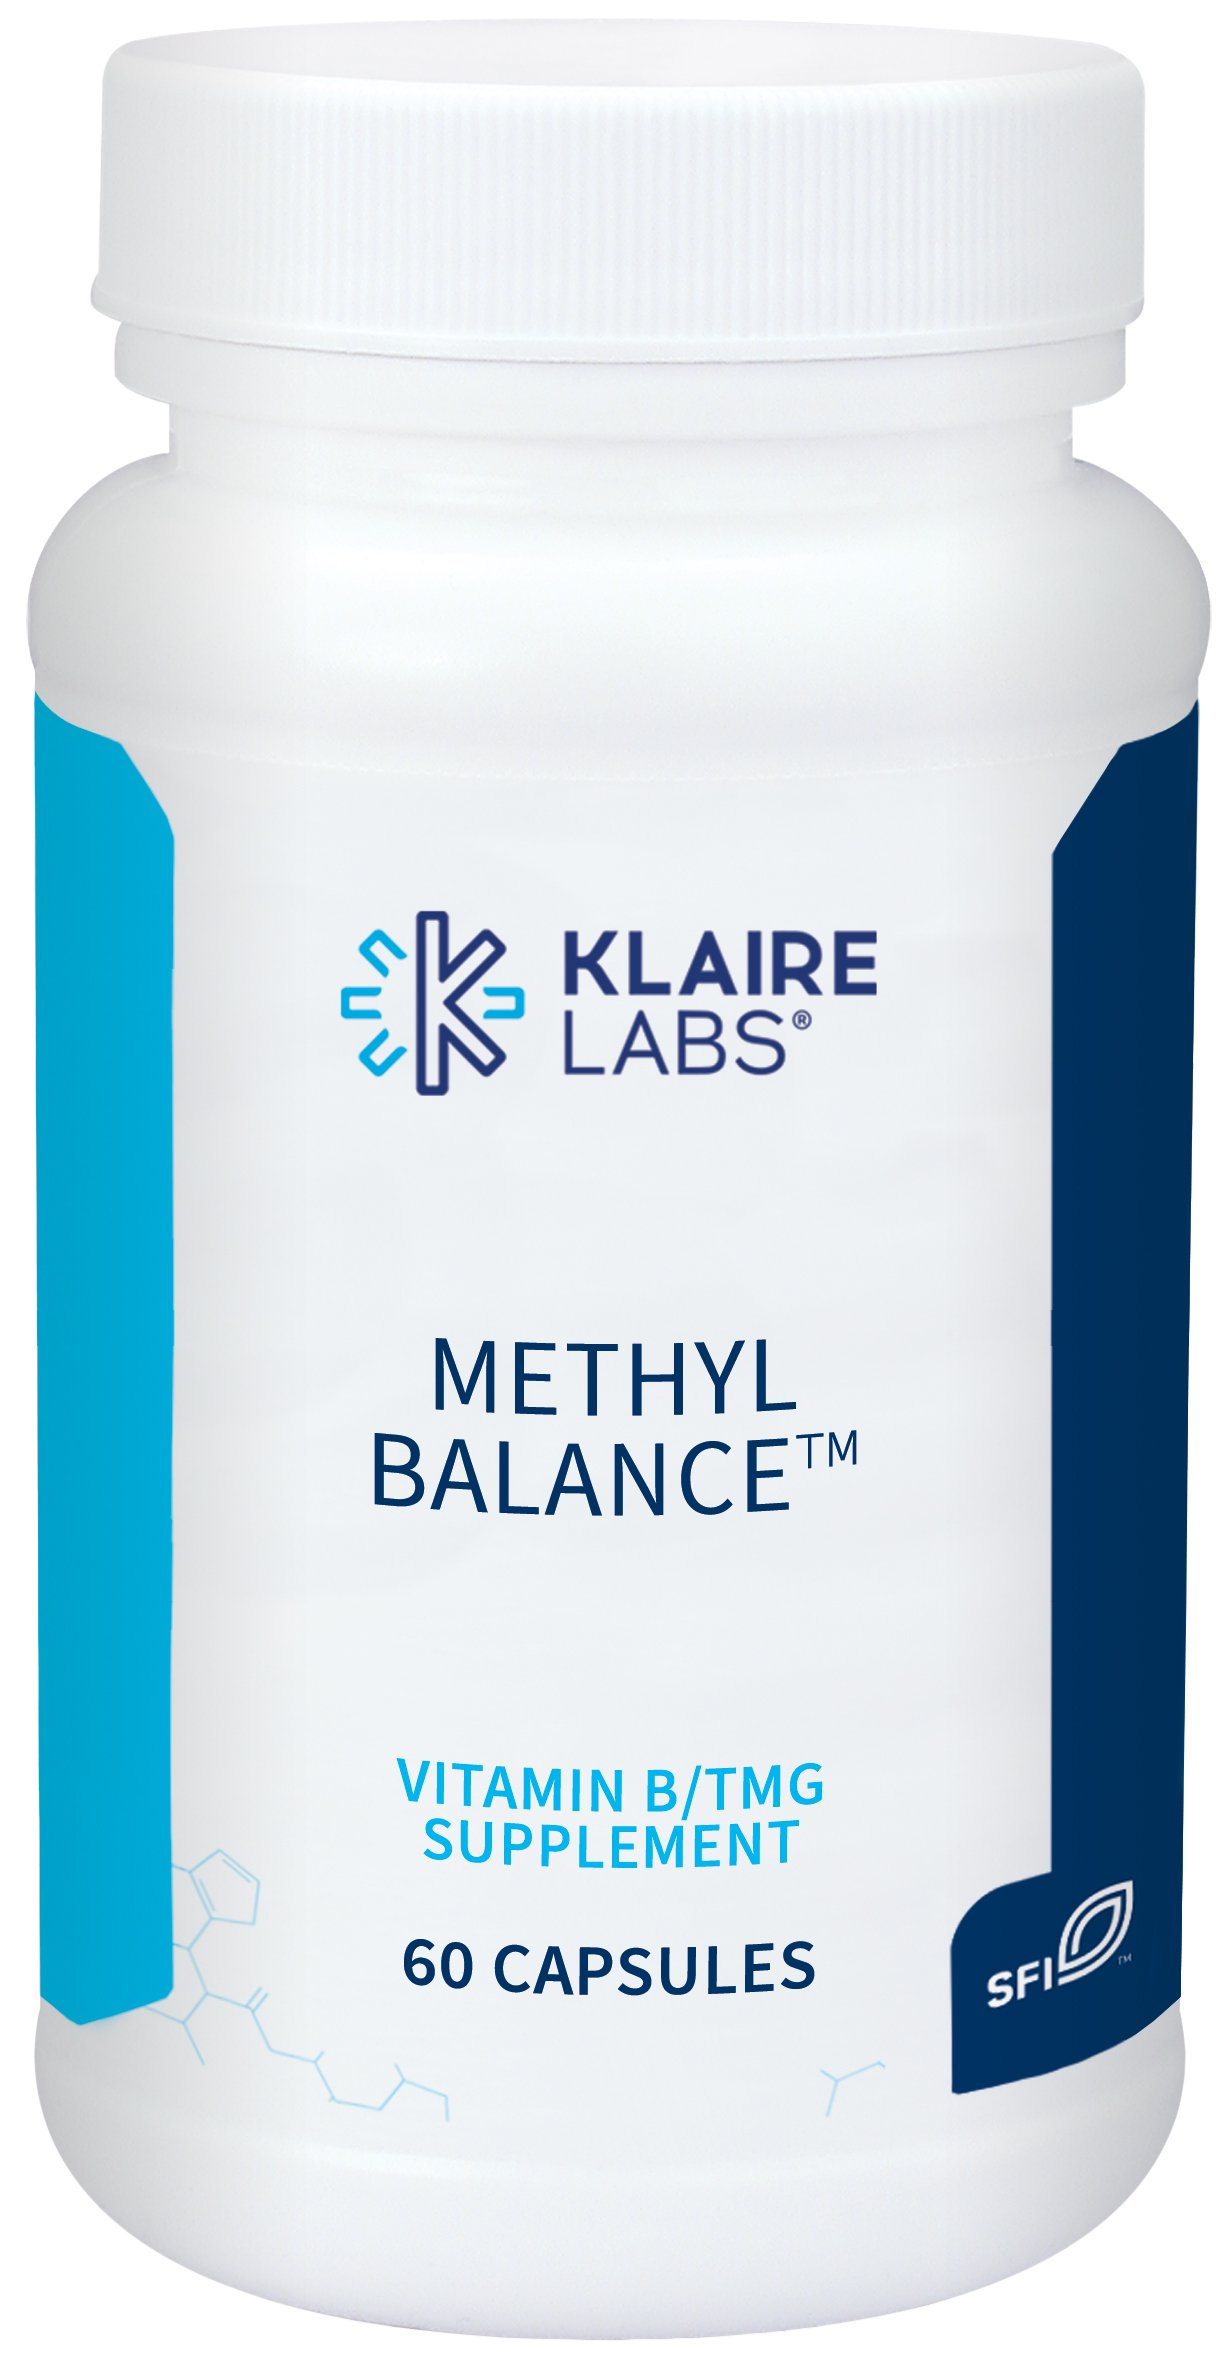 Klaire Labs (ProThera) Methyl Balance - Methylation Support with Active Folate, B2, B12, B6 and TMG (60 Capsules)